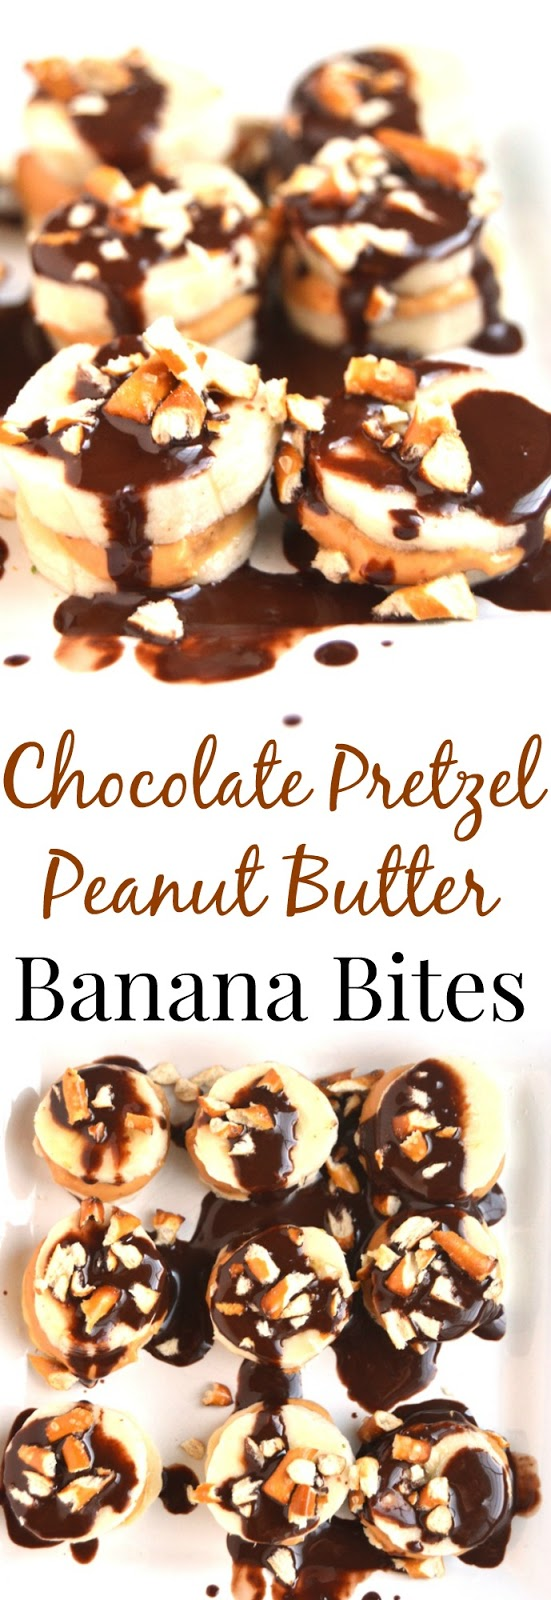 Chocolate Pretzel Peanut Butter Banana Bites are a simple 5 ingredient snack that takes 5 minutes to make! Enjoy frozen or regular. www.nutritionistreviews.com